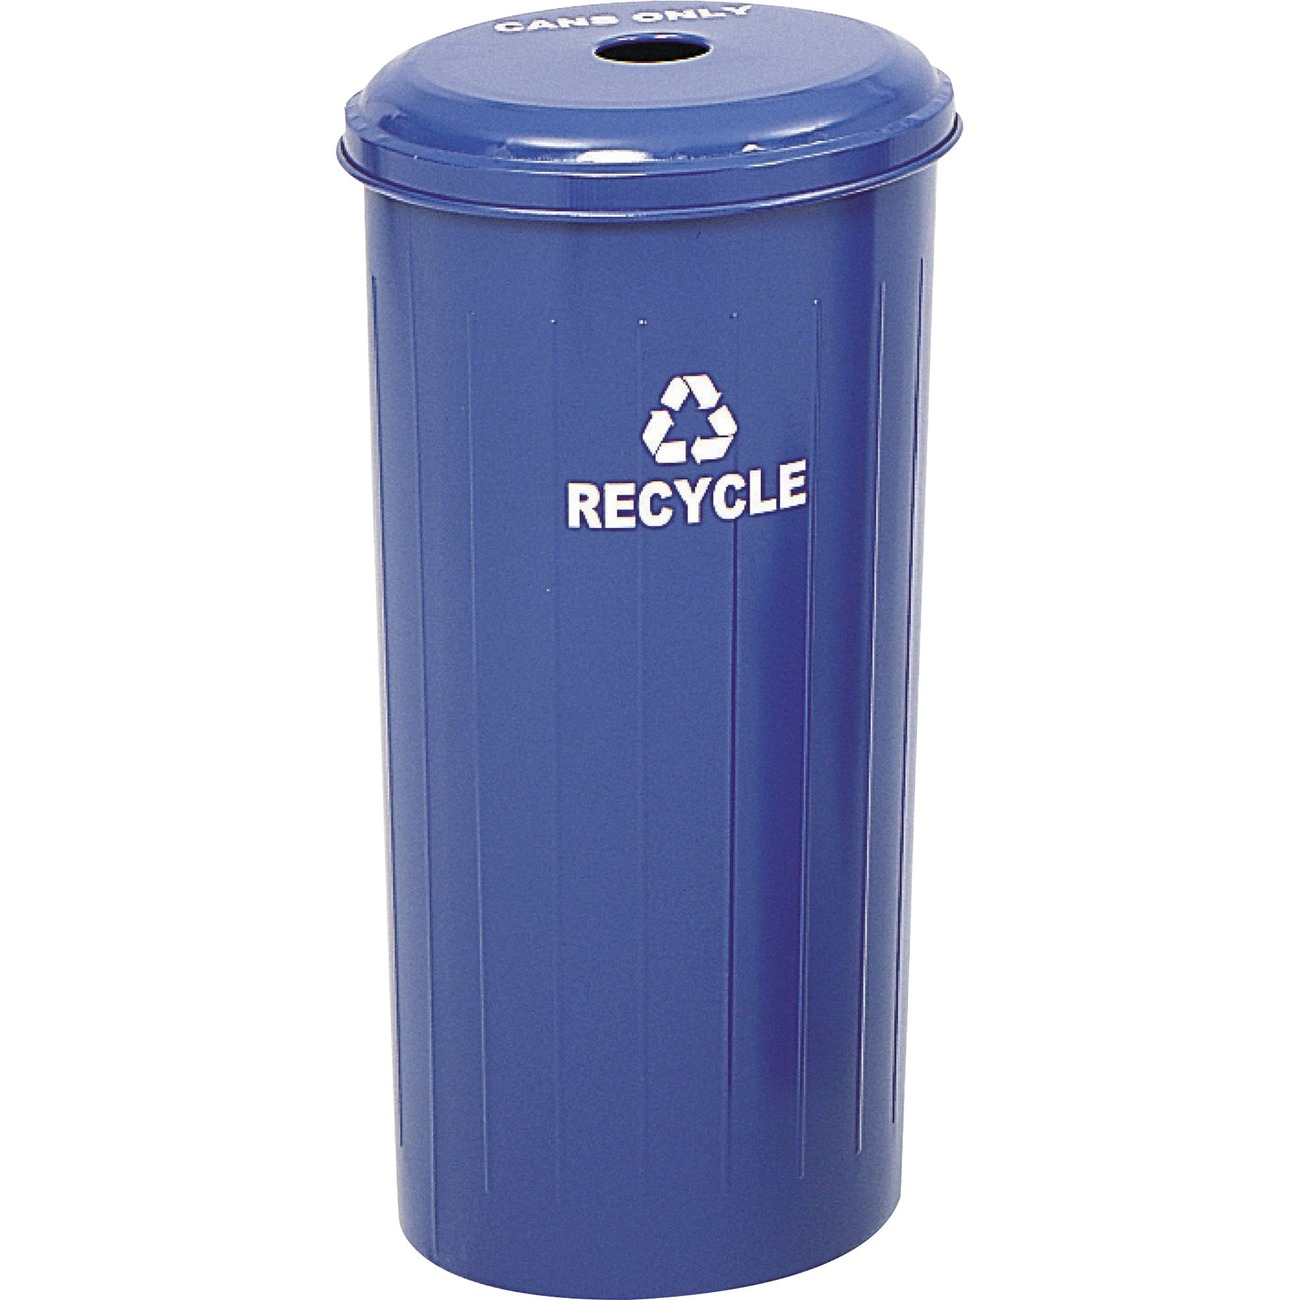 9632BU Safco Recycling Receptacle with Lid 20 gal Capacity 30 Height x 16